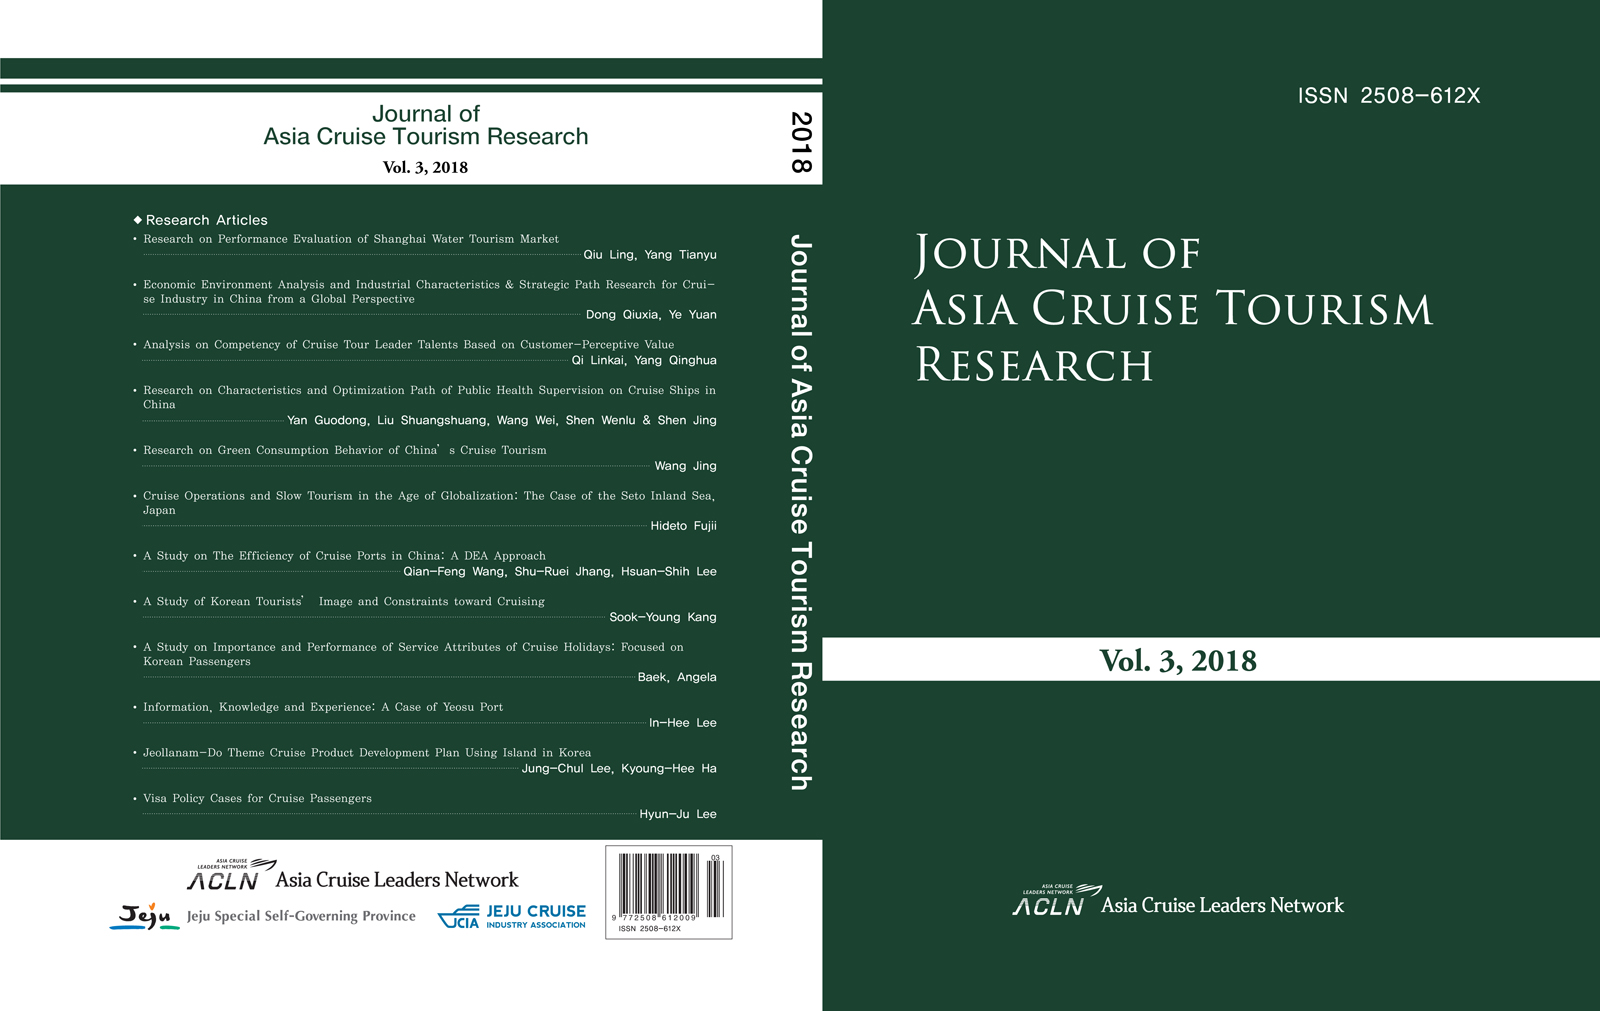 Journal of Asia Cruise Tourism 2018 cover2.jpg